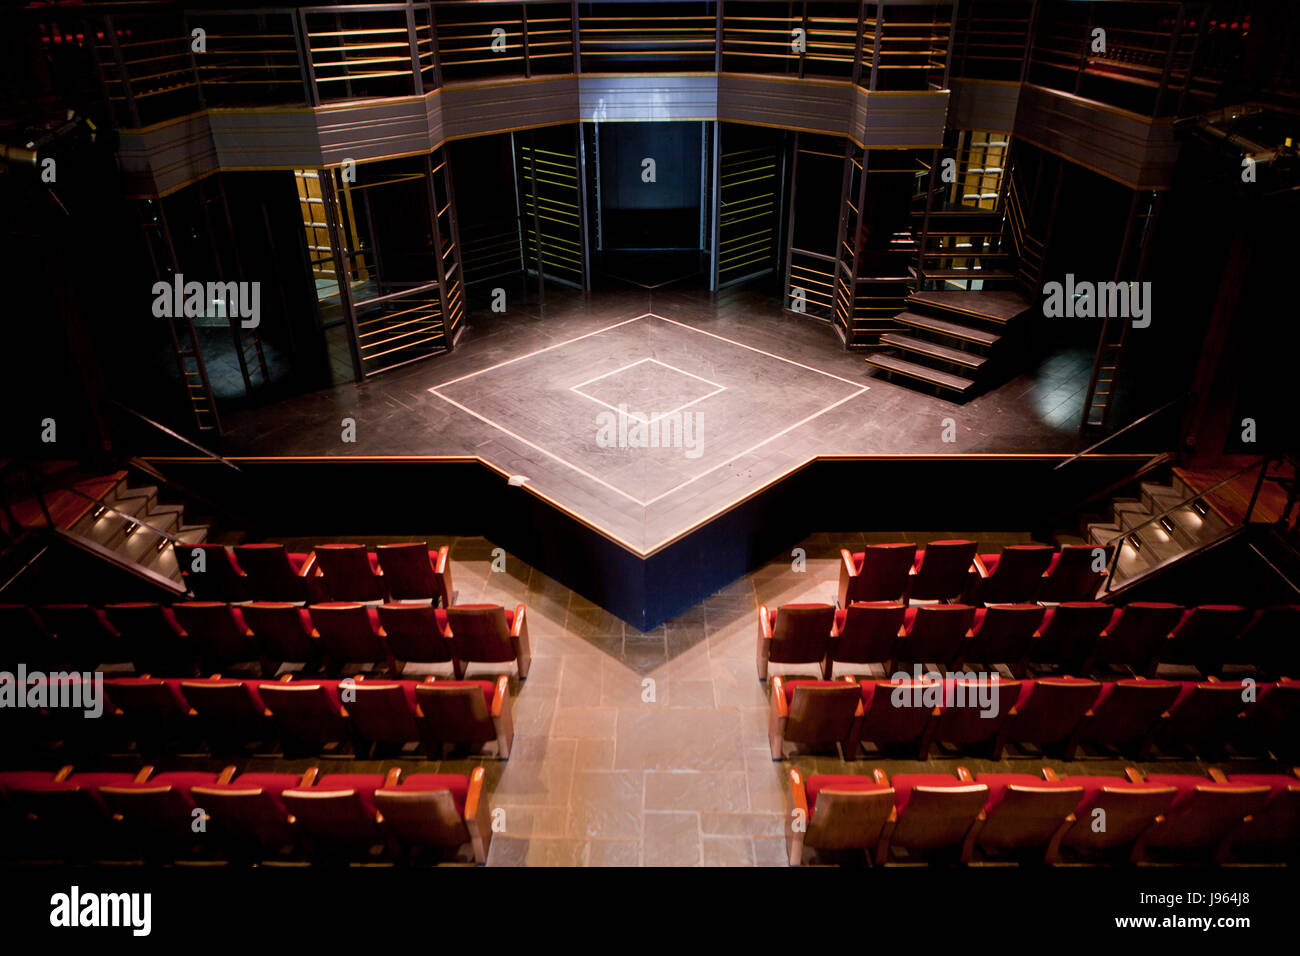 The Vakhtangov Theater. Scheme of the hall and its history